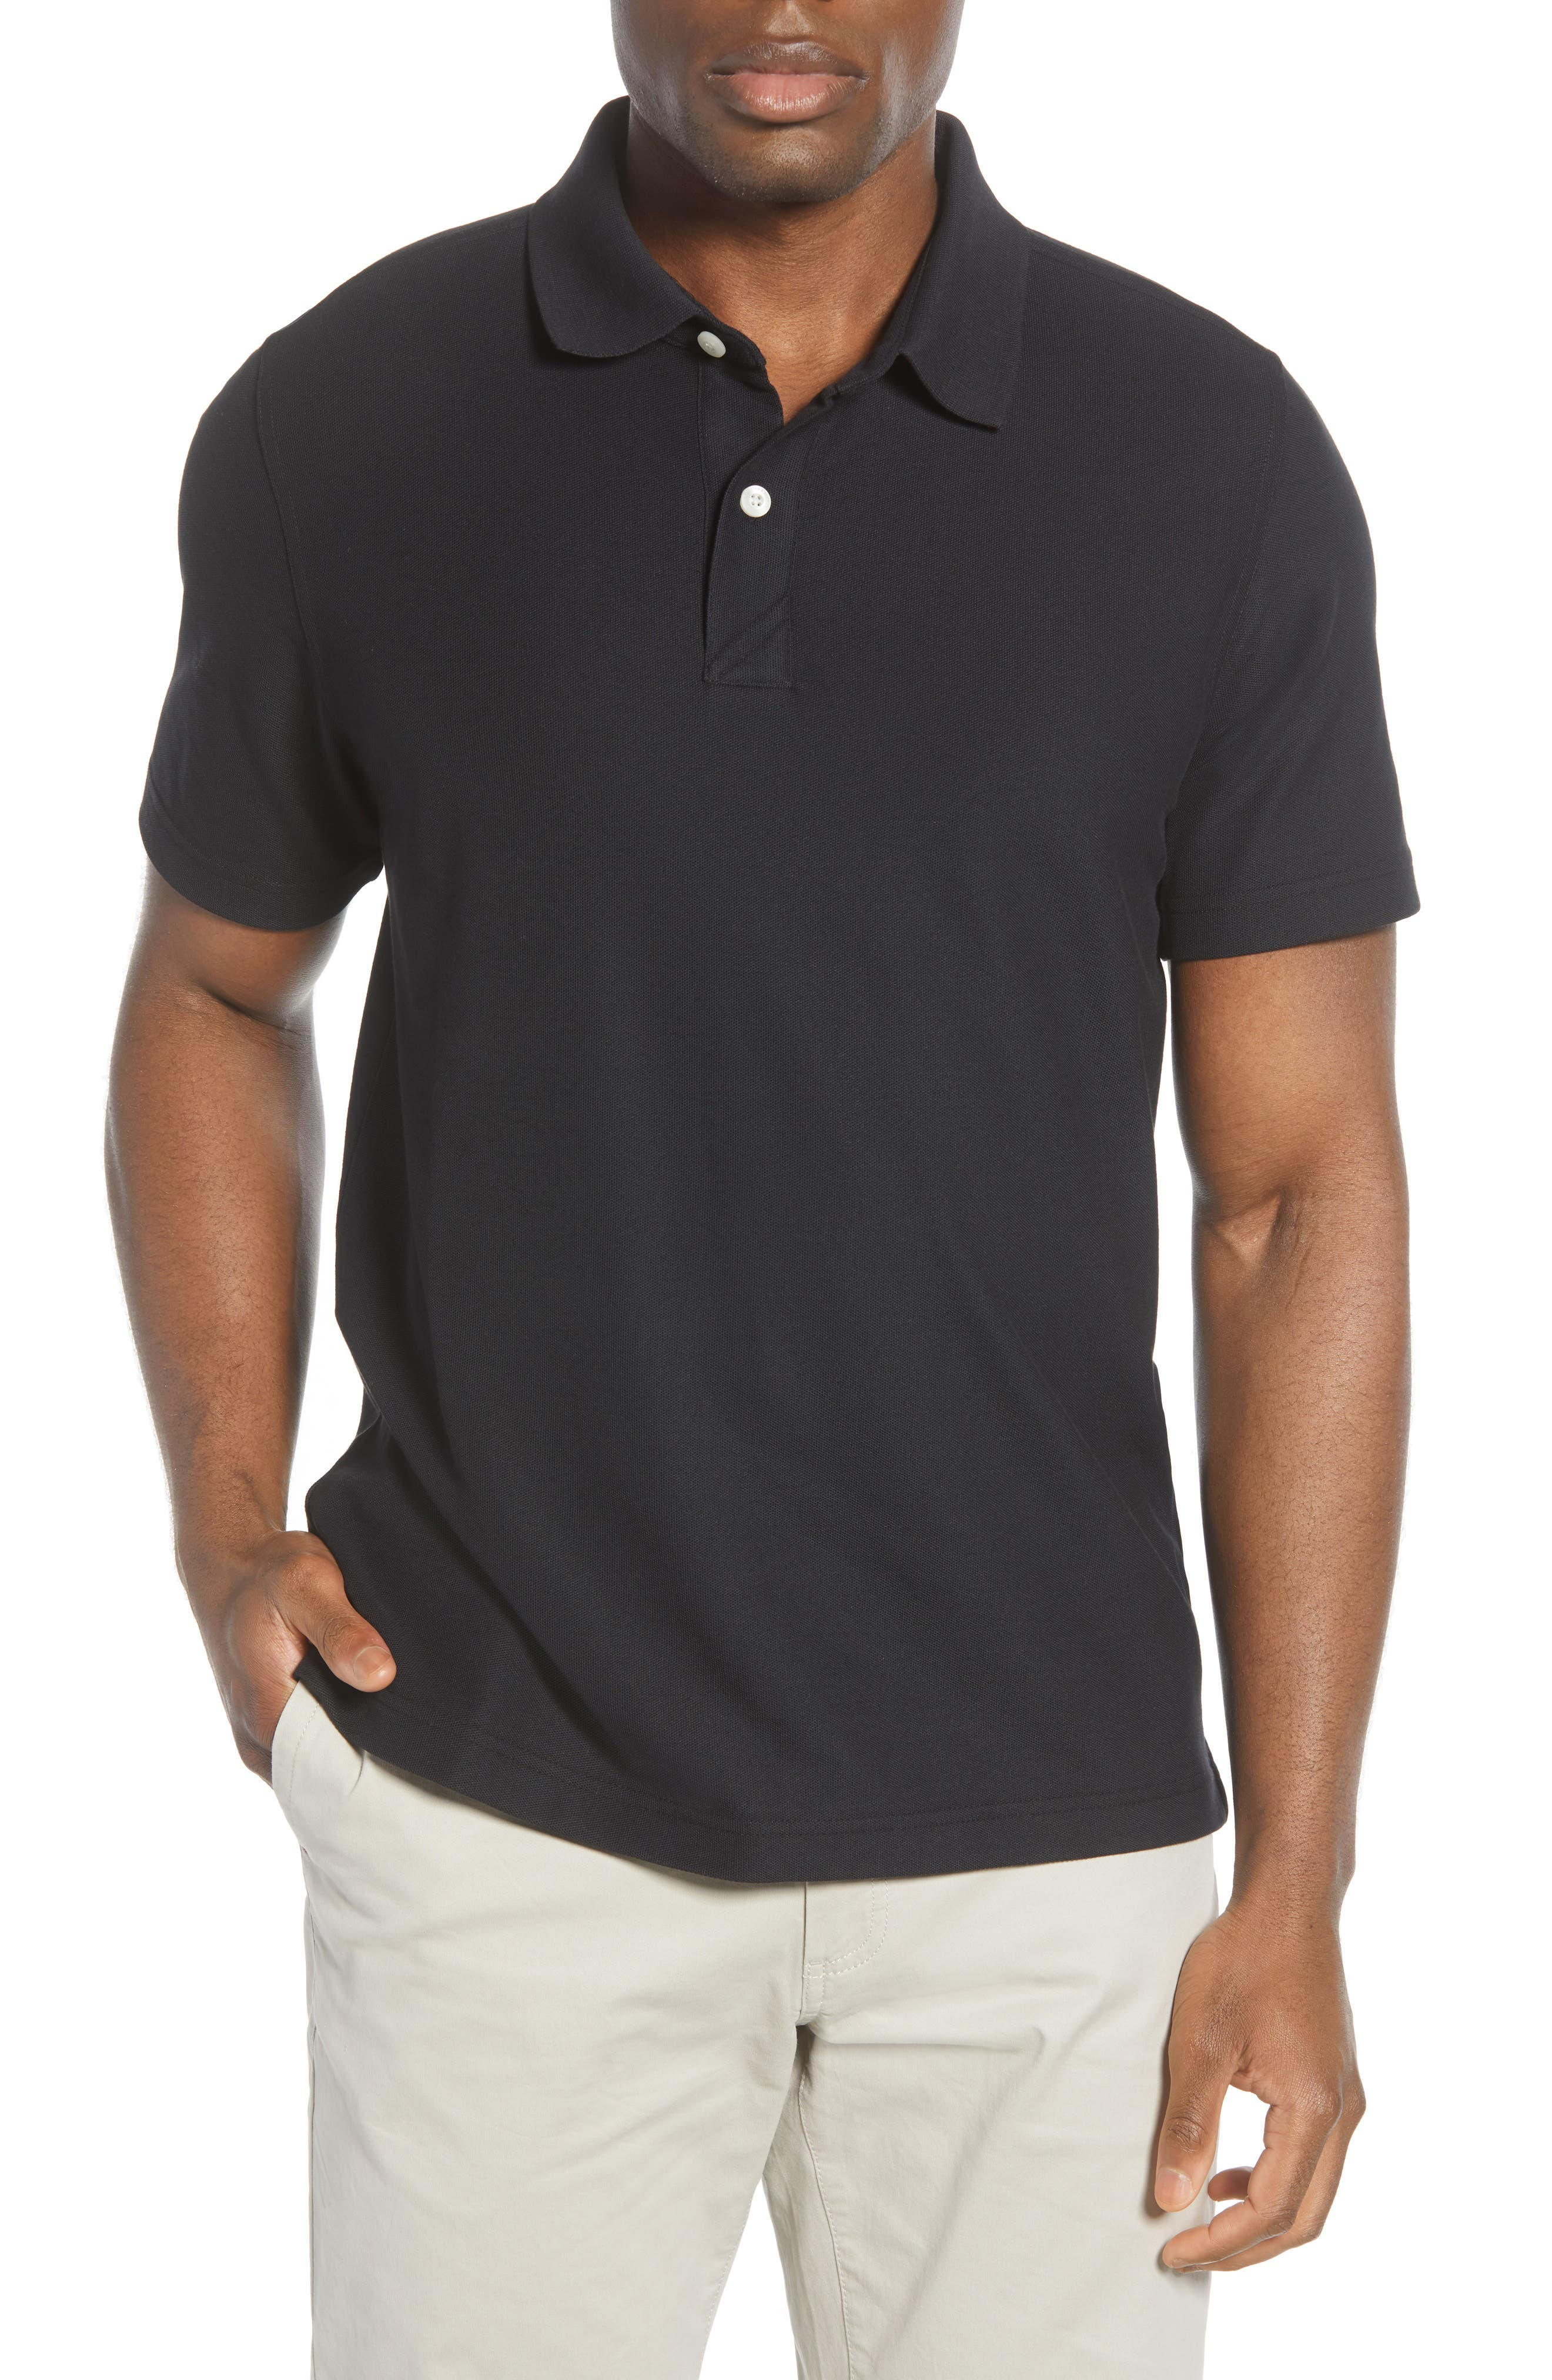 Cut from moisture-wicking DryTec cotton, this casually handsome short-sleeve polo will keep you cool and comfortable all day. Style Name: Cutter & Buck Breakthrough Polo. Style Number: 5942233 2. Available in stores.